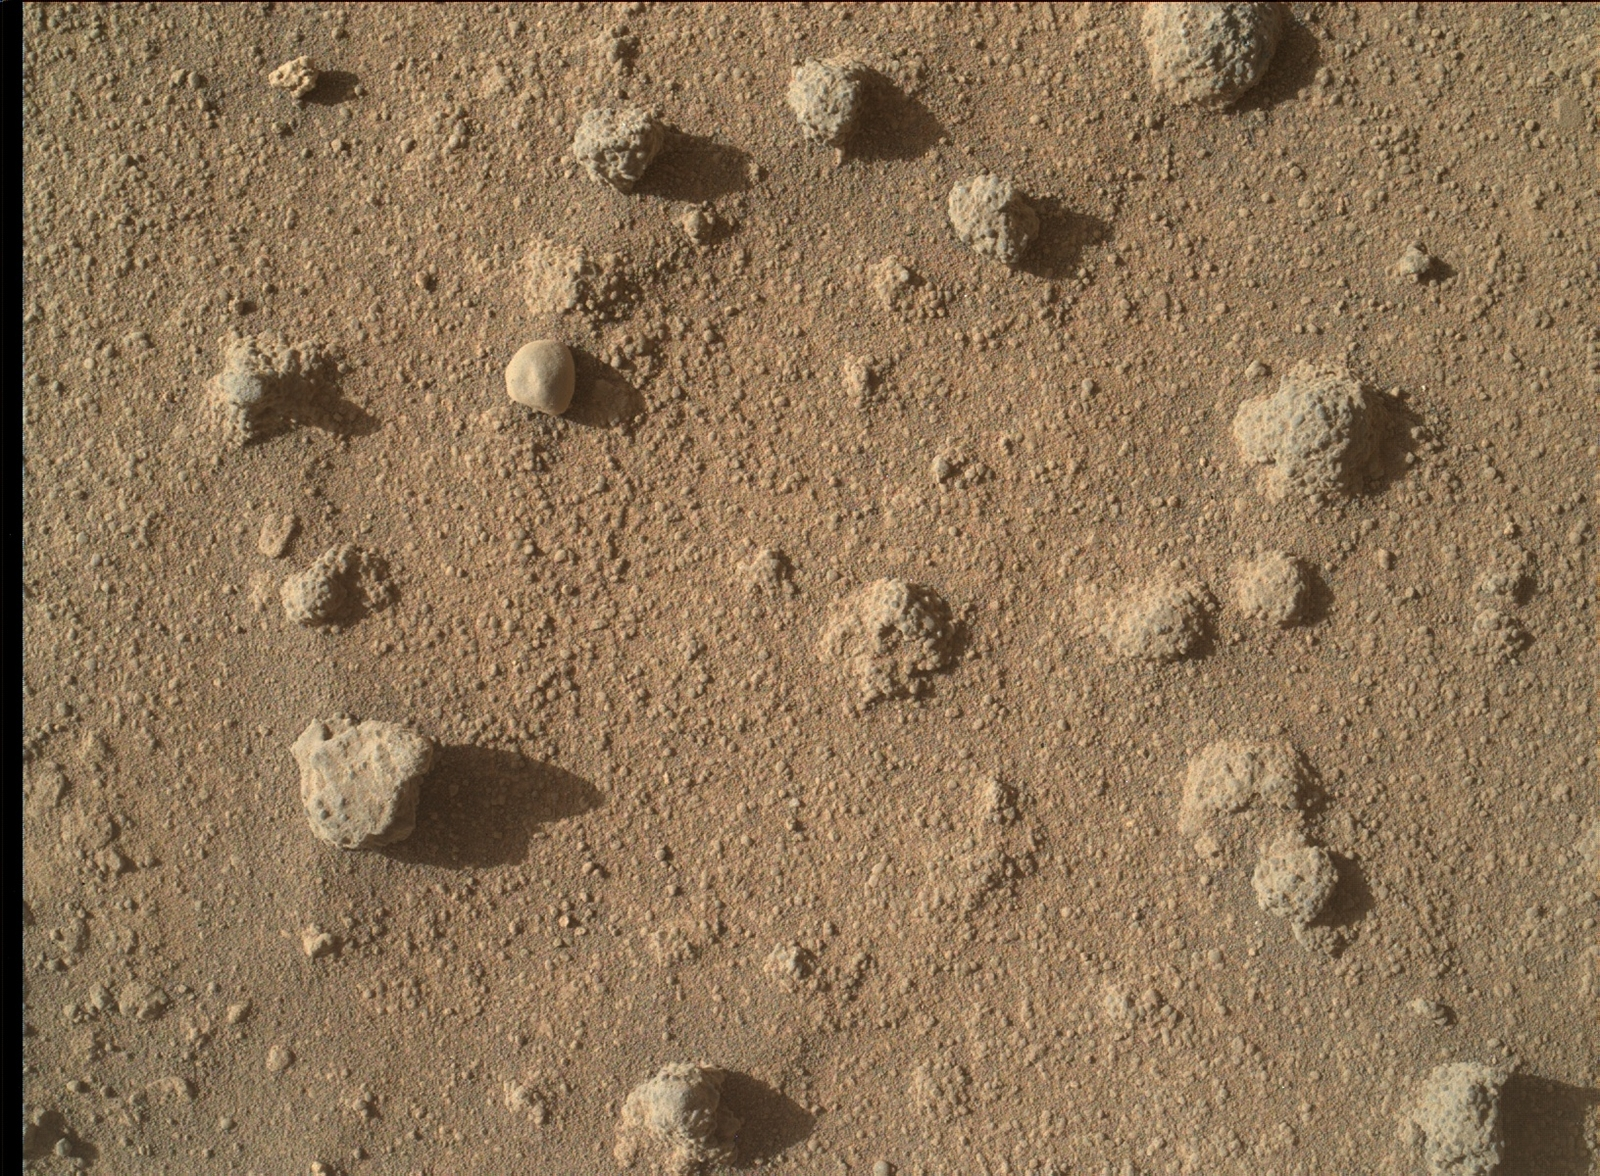 This view shows nodules exposed in sandstone that is part of the Stimson geological unit on Mount Sharp, Mars.  The nodules can be seen to consist of grains of sand cemented together.